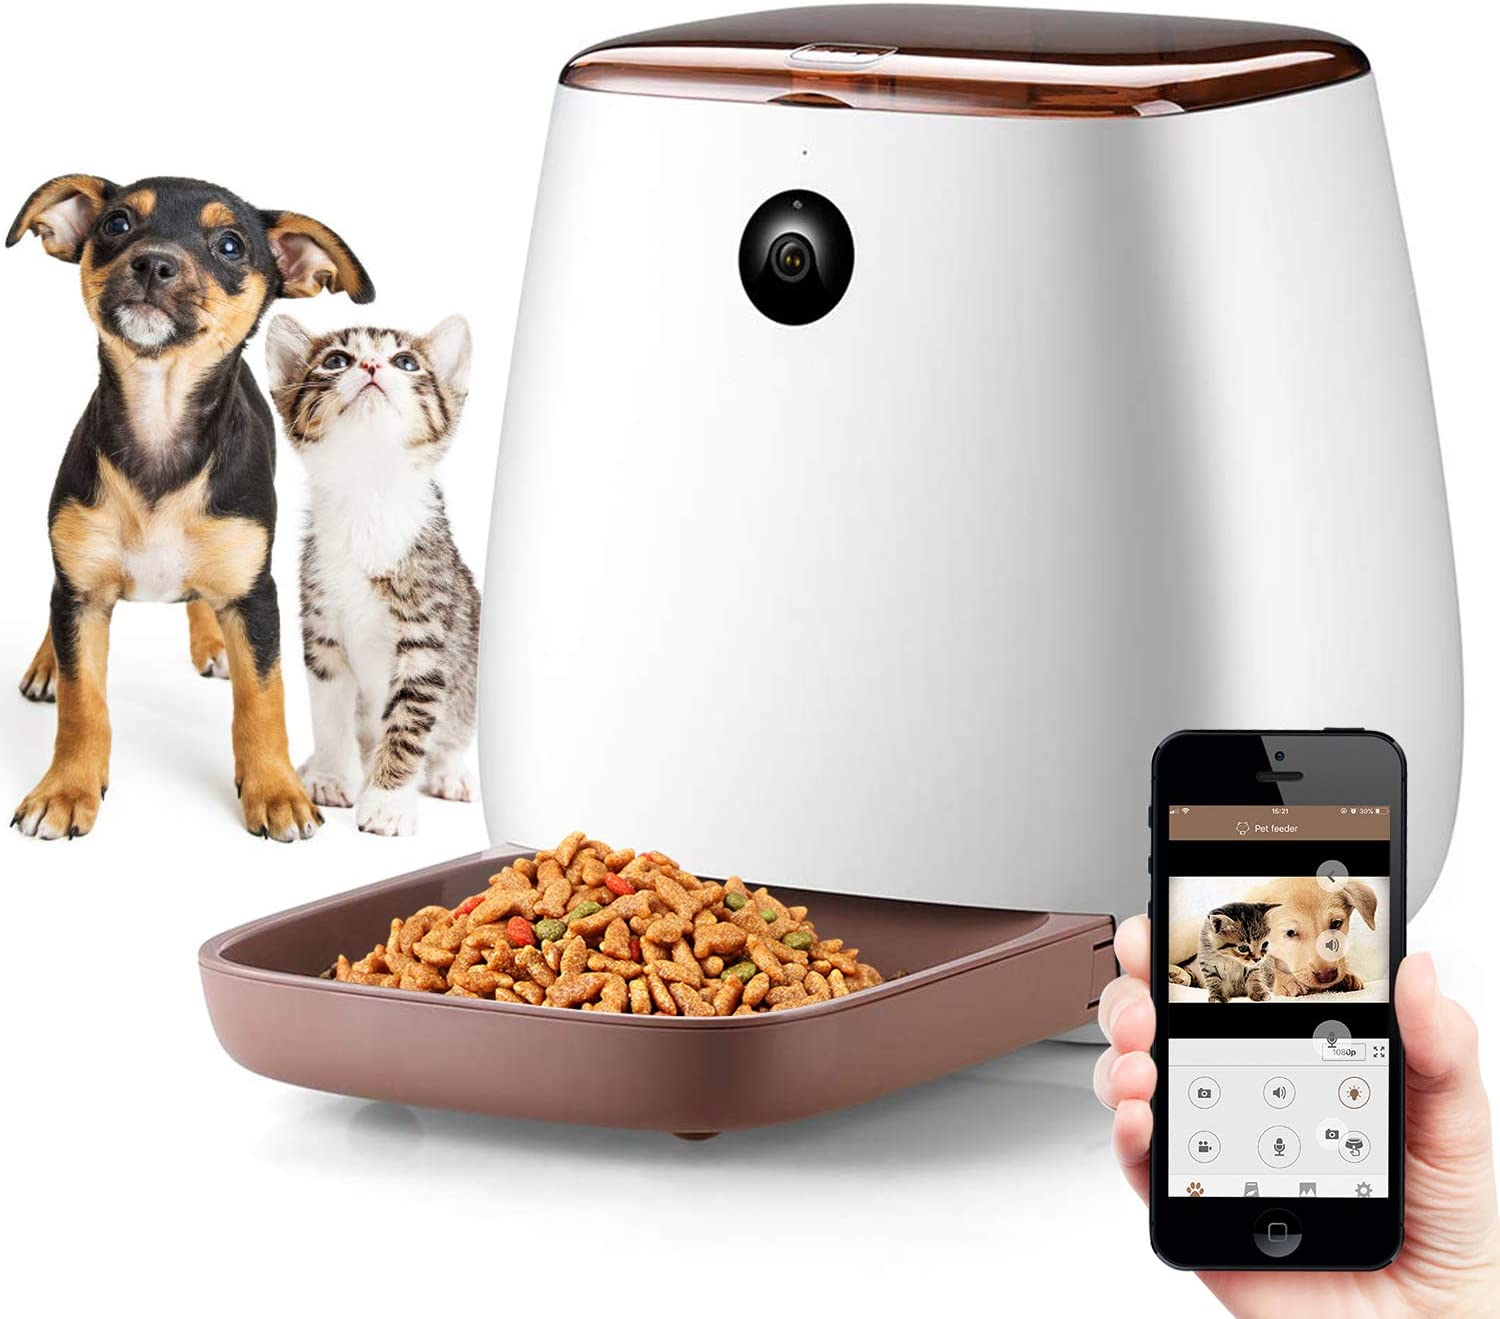 71IcZ lk2ML. AC SL1500 - Best automatic feeder for cat: 12 products reviewed